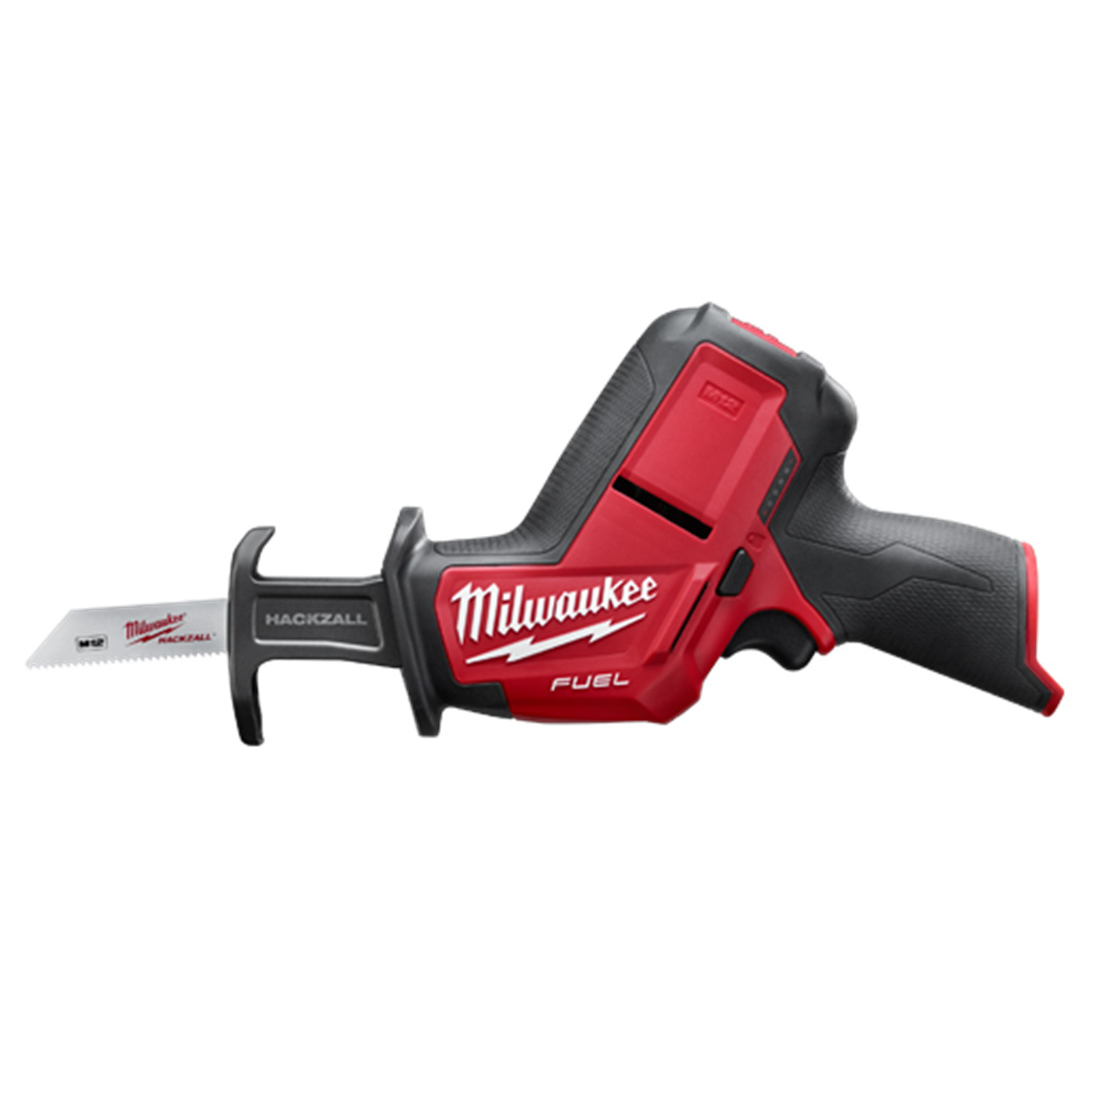 M12 FUEL Hackzall Reciprocating Saw (Tool Only)